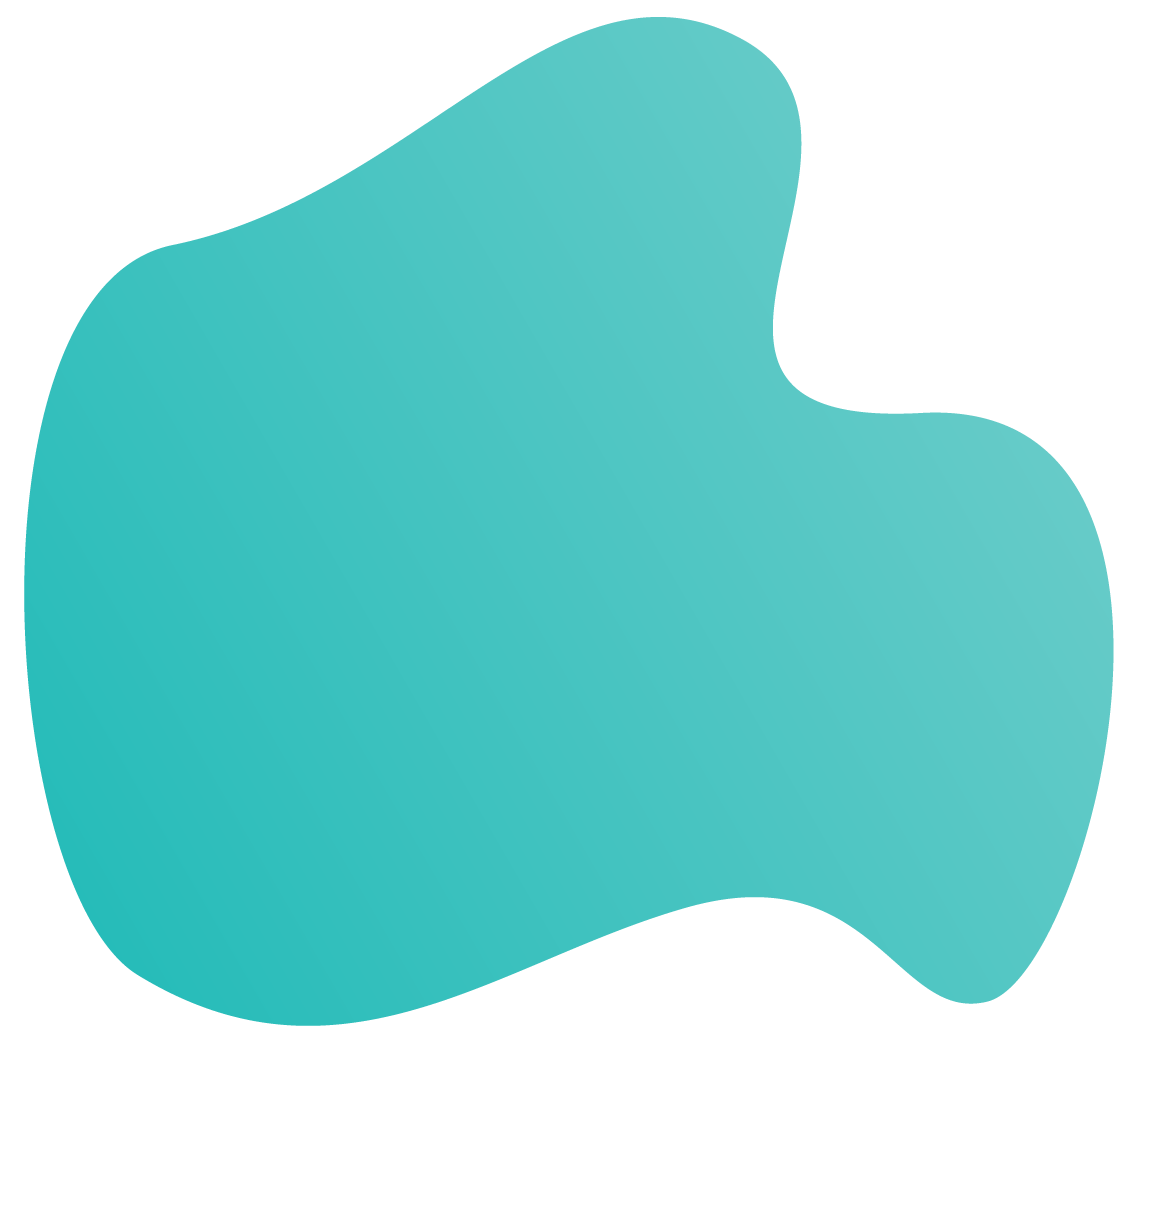 A teal blob image used in backgrounds